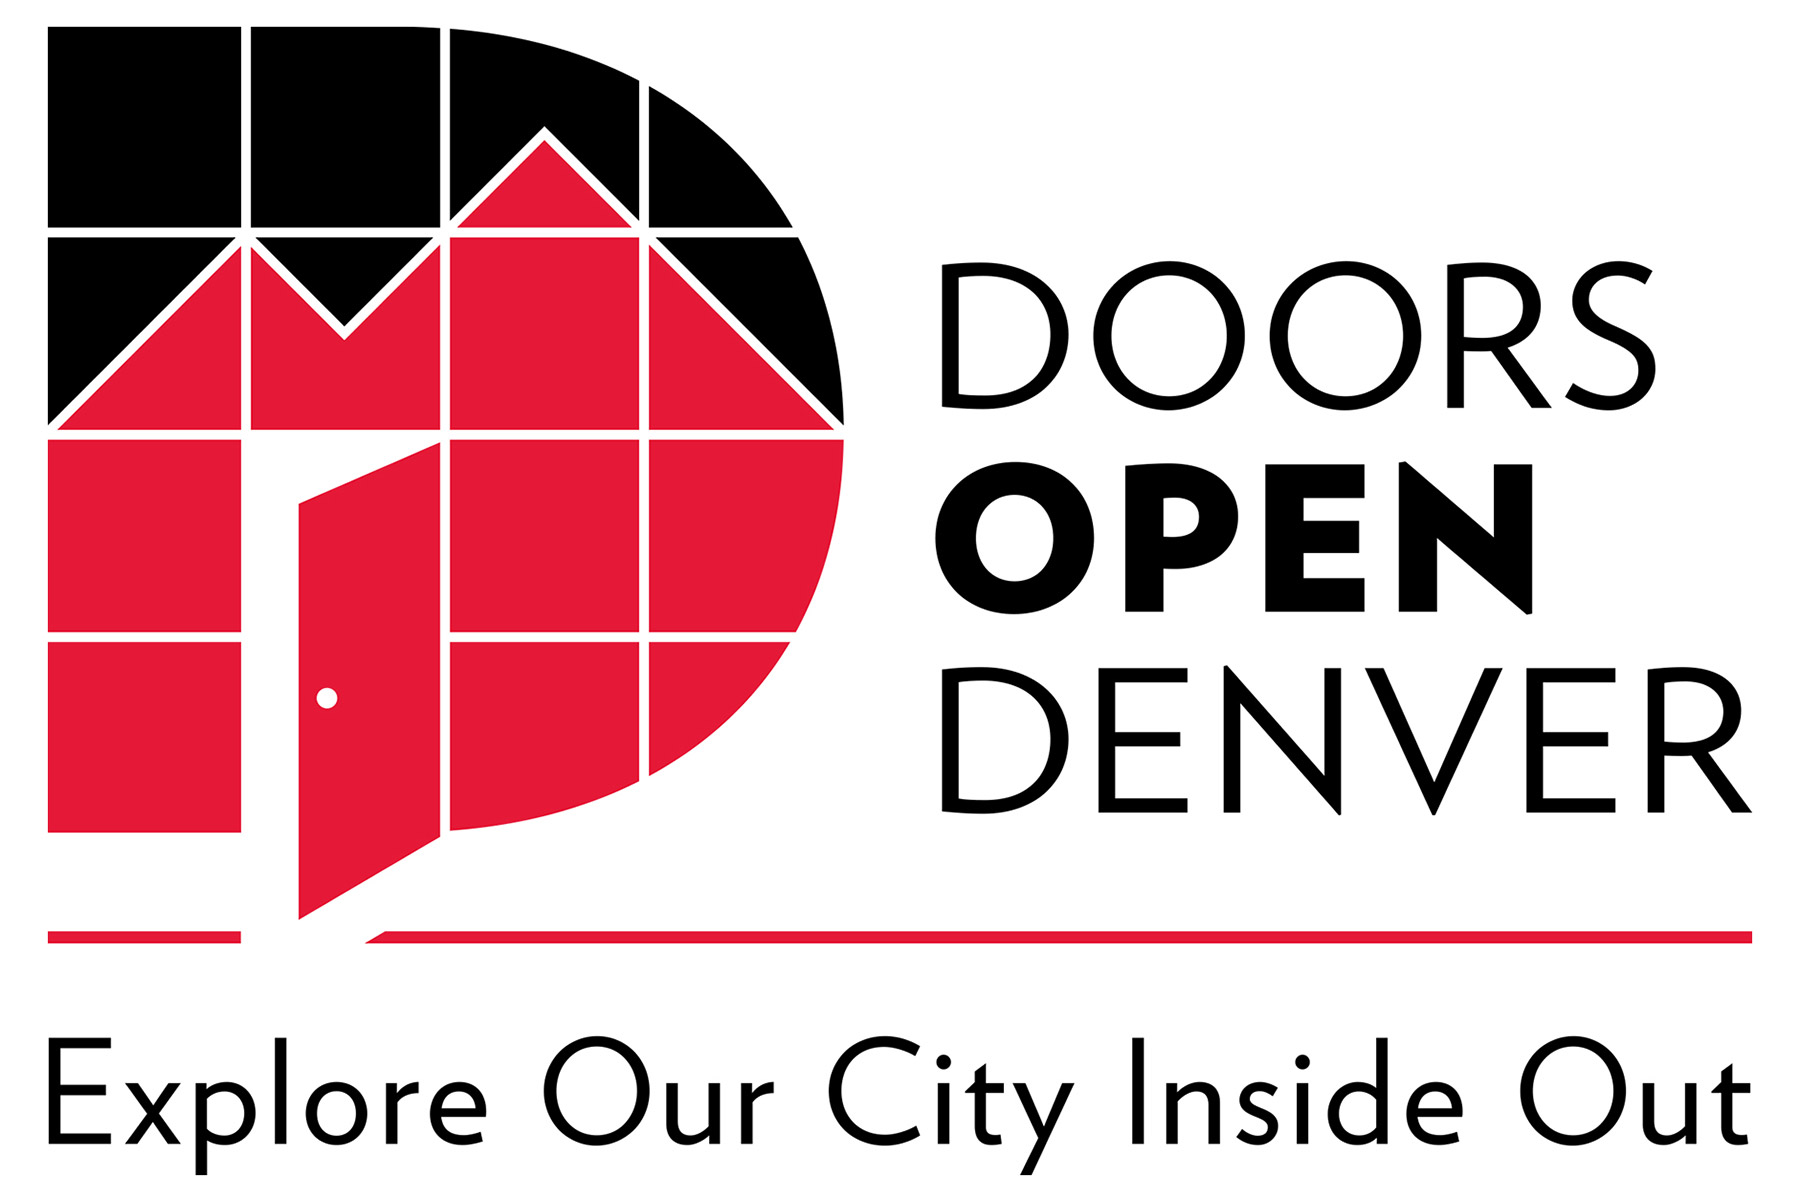 Mark Your Calendars! Doors Open Denver 2017 Is April 29-30!